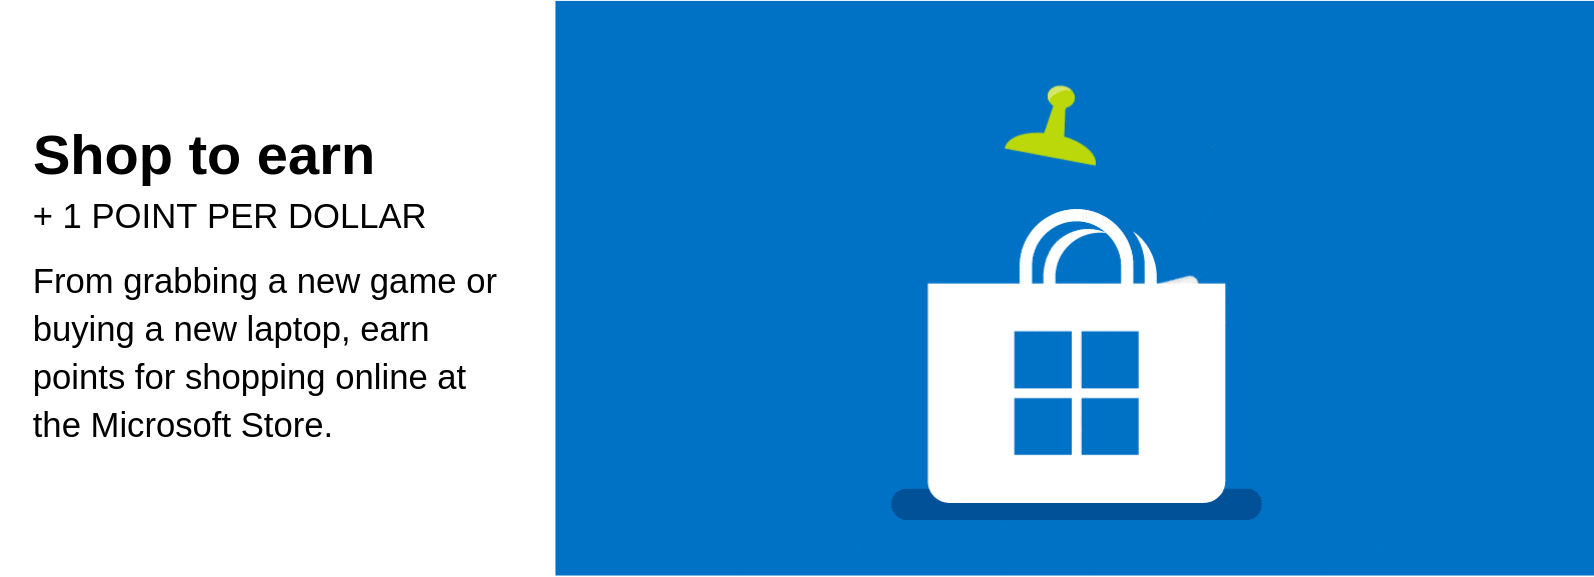 Microsoft rewards shop to earn